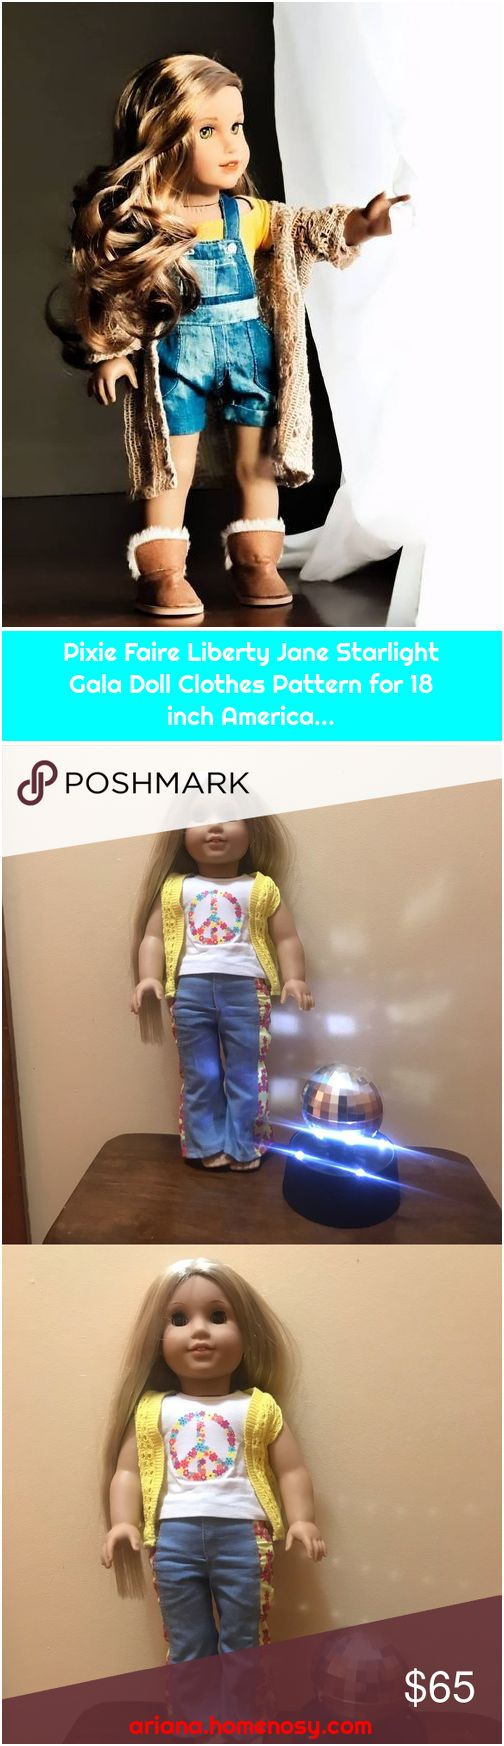 Pixie Faire Liberty Jane Starlight Gala Doll Clothes Pattern for 18 inch America...